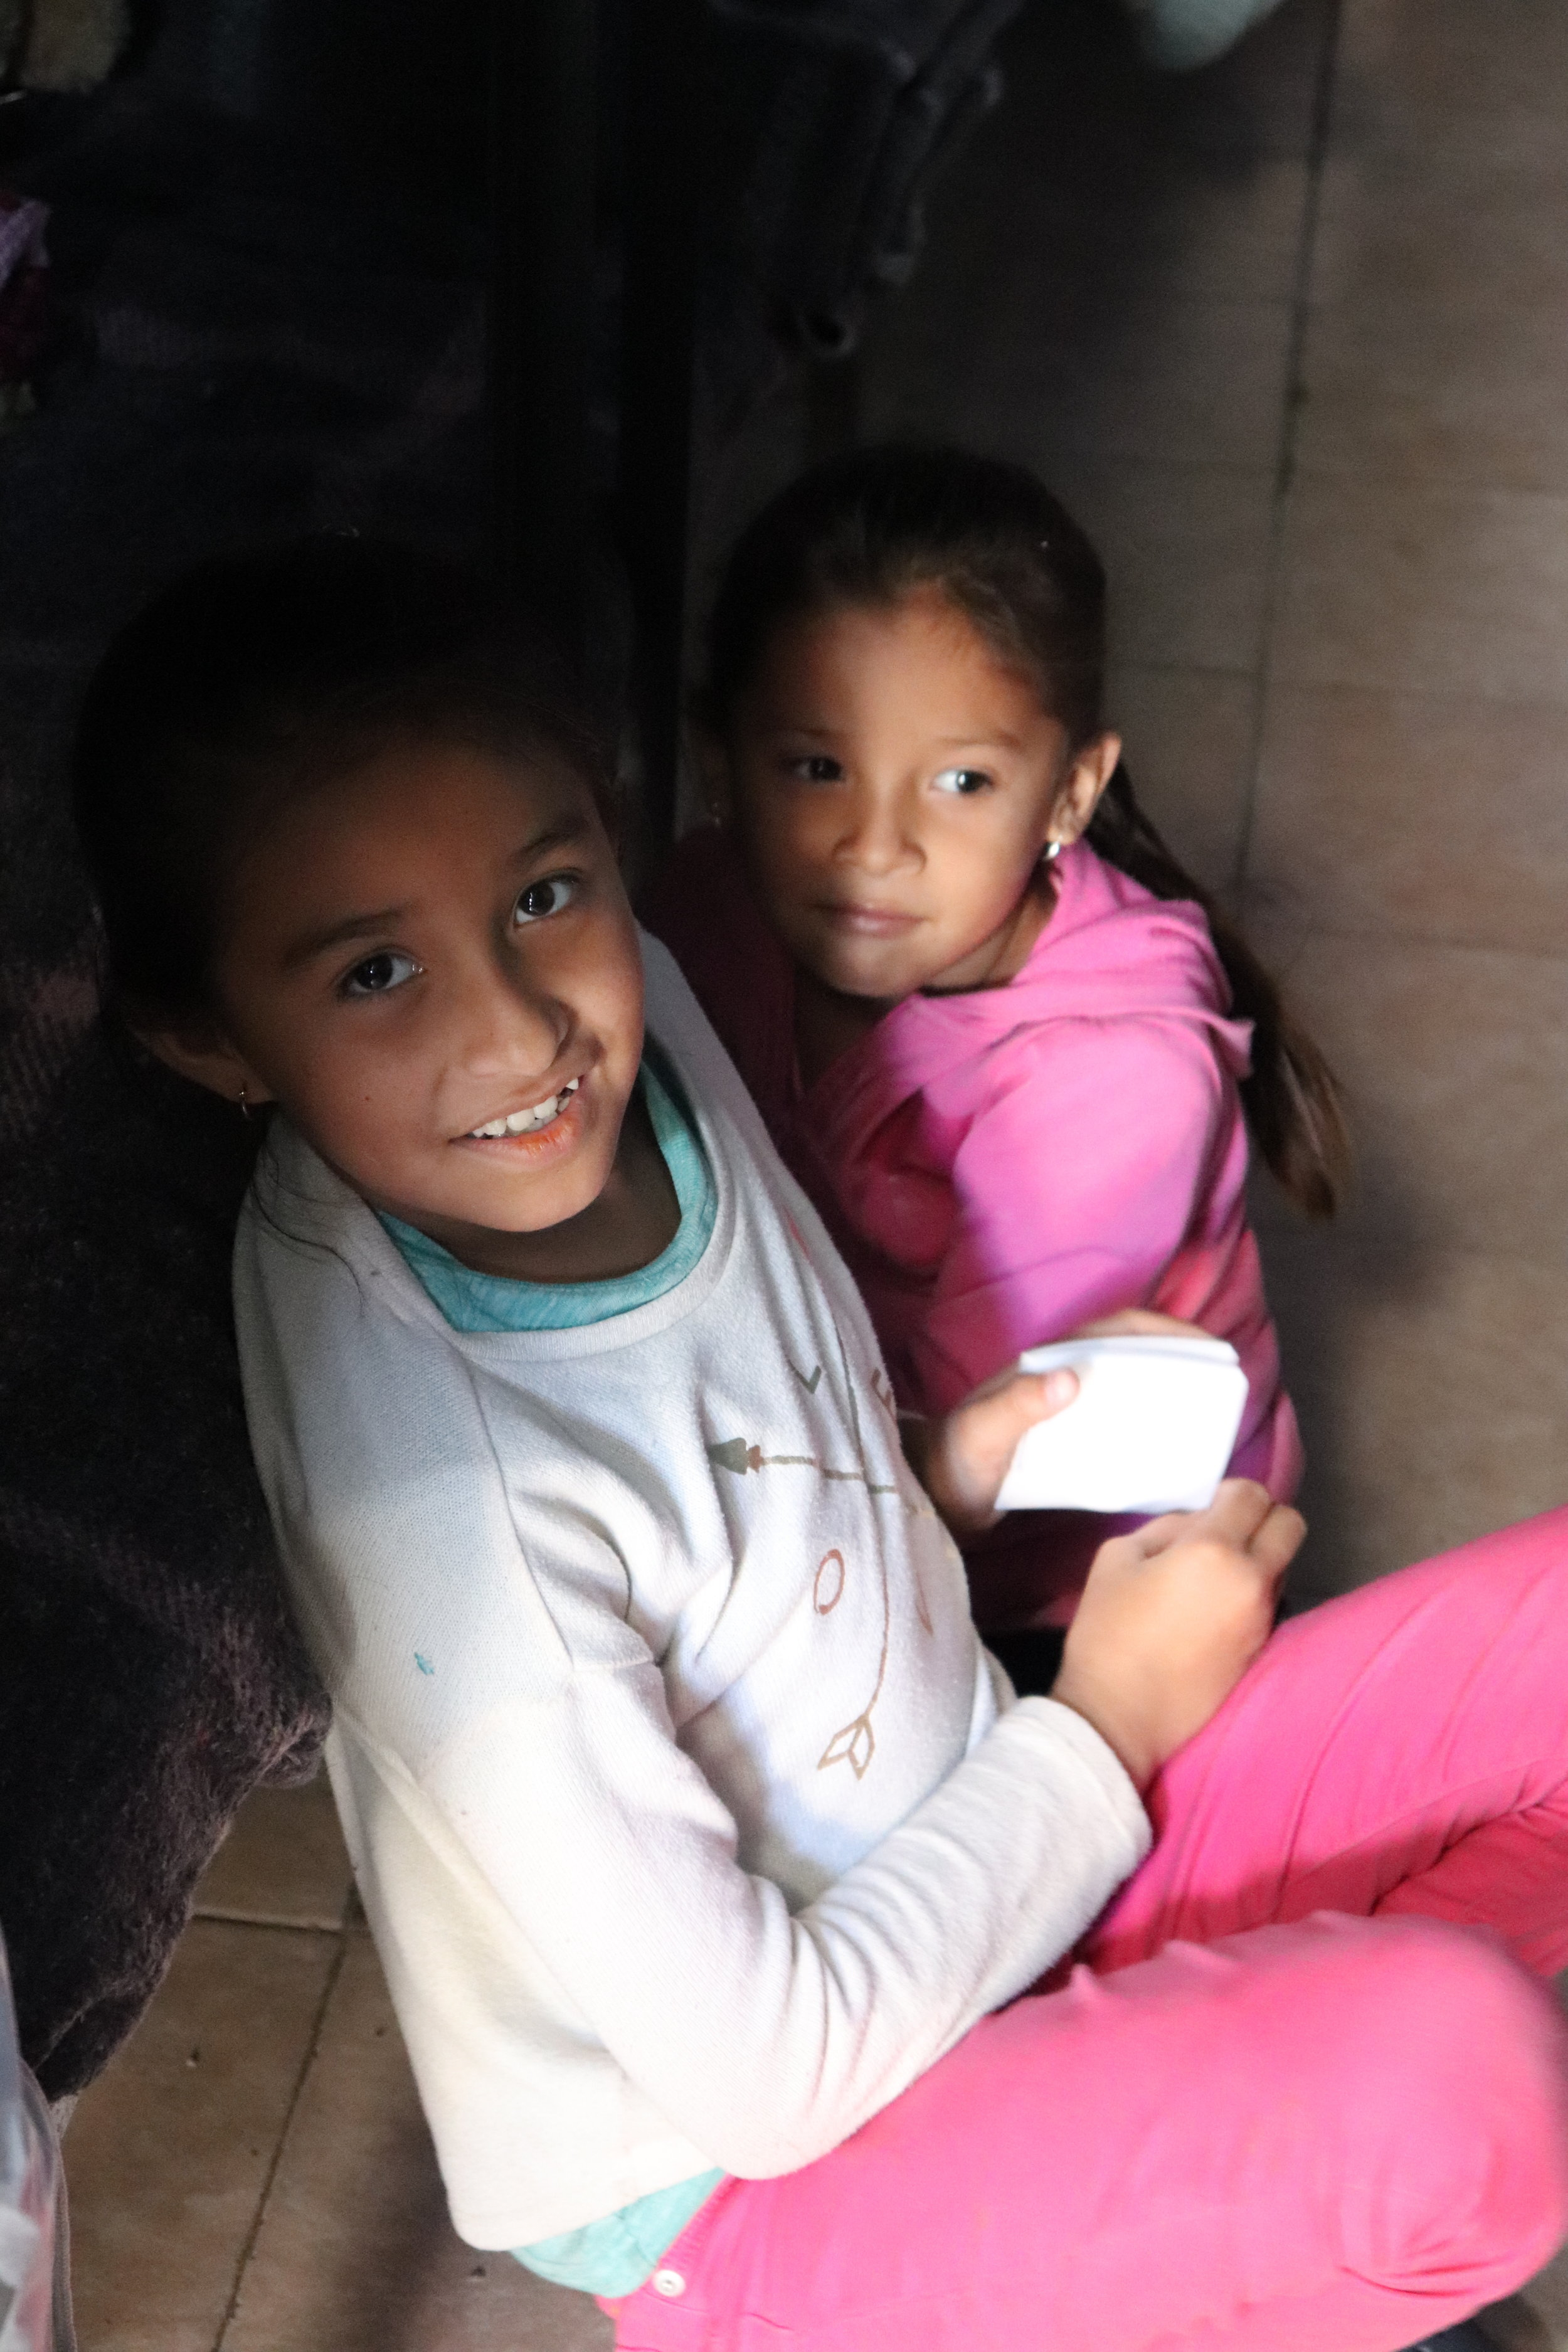 Two young girls who have been at La Roca for over a month.